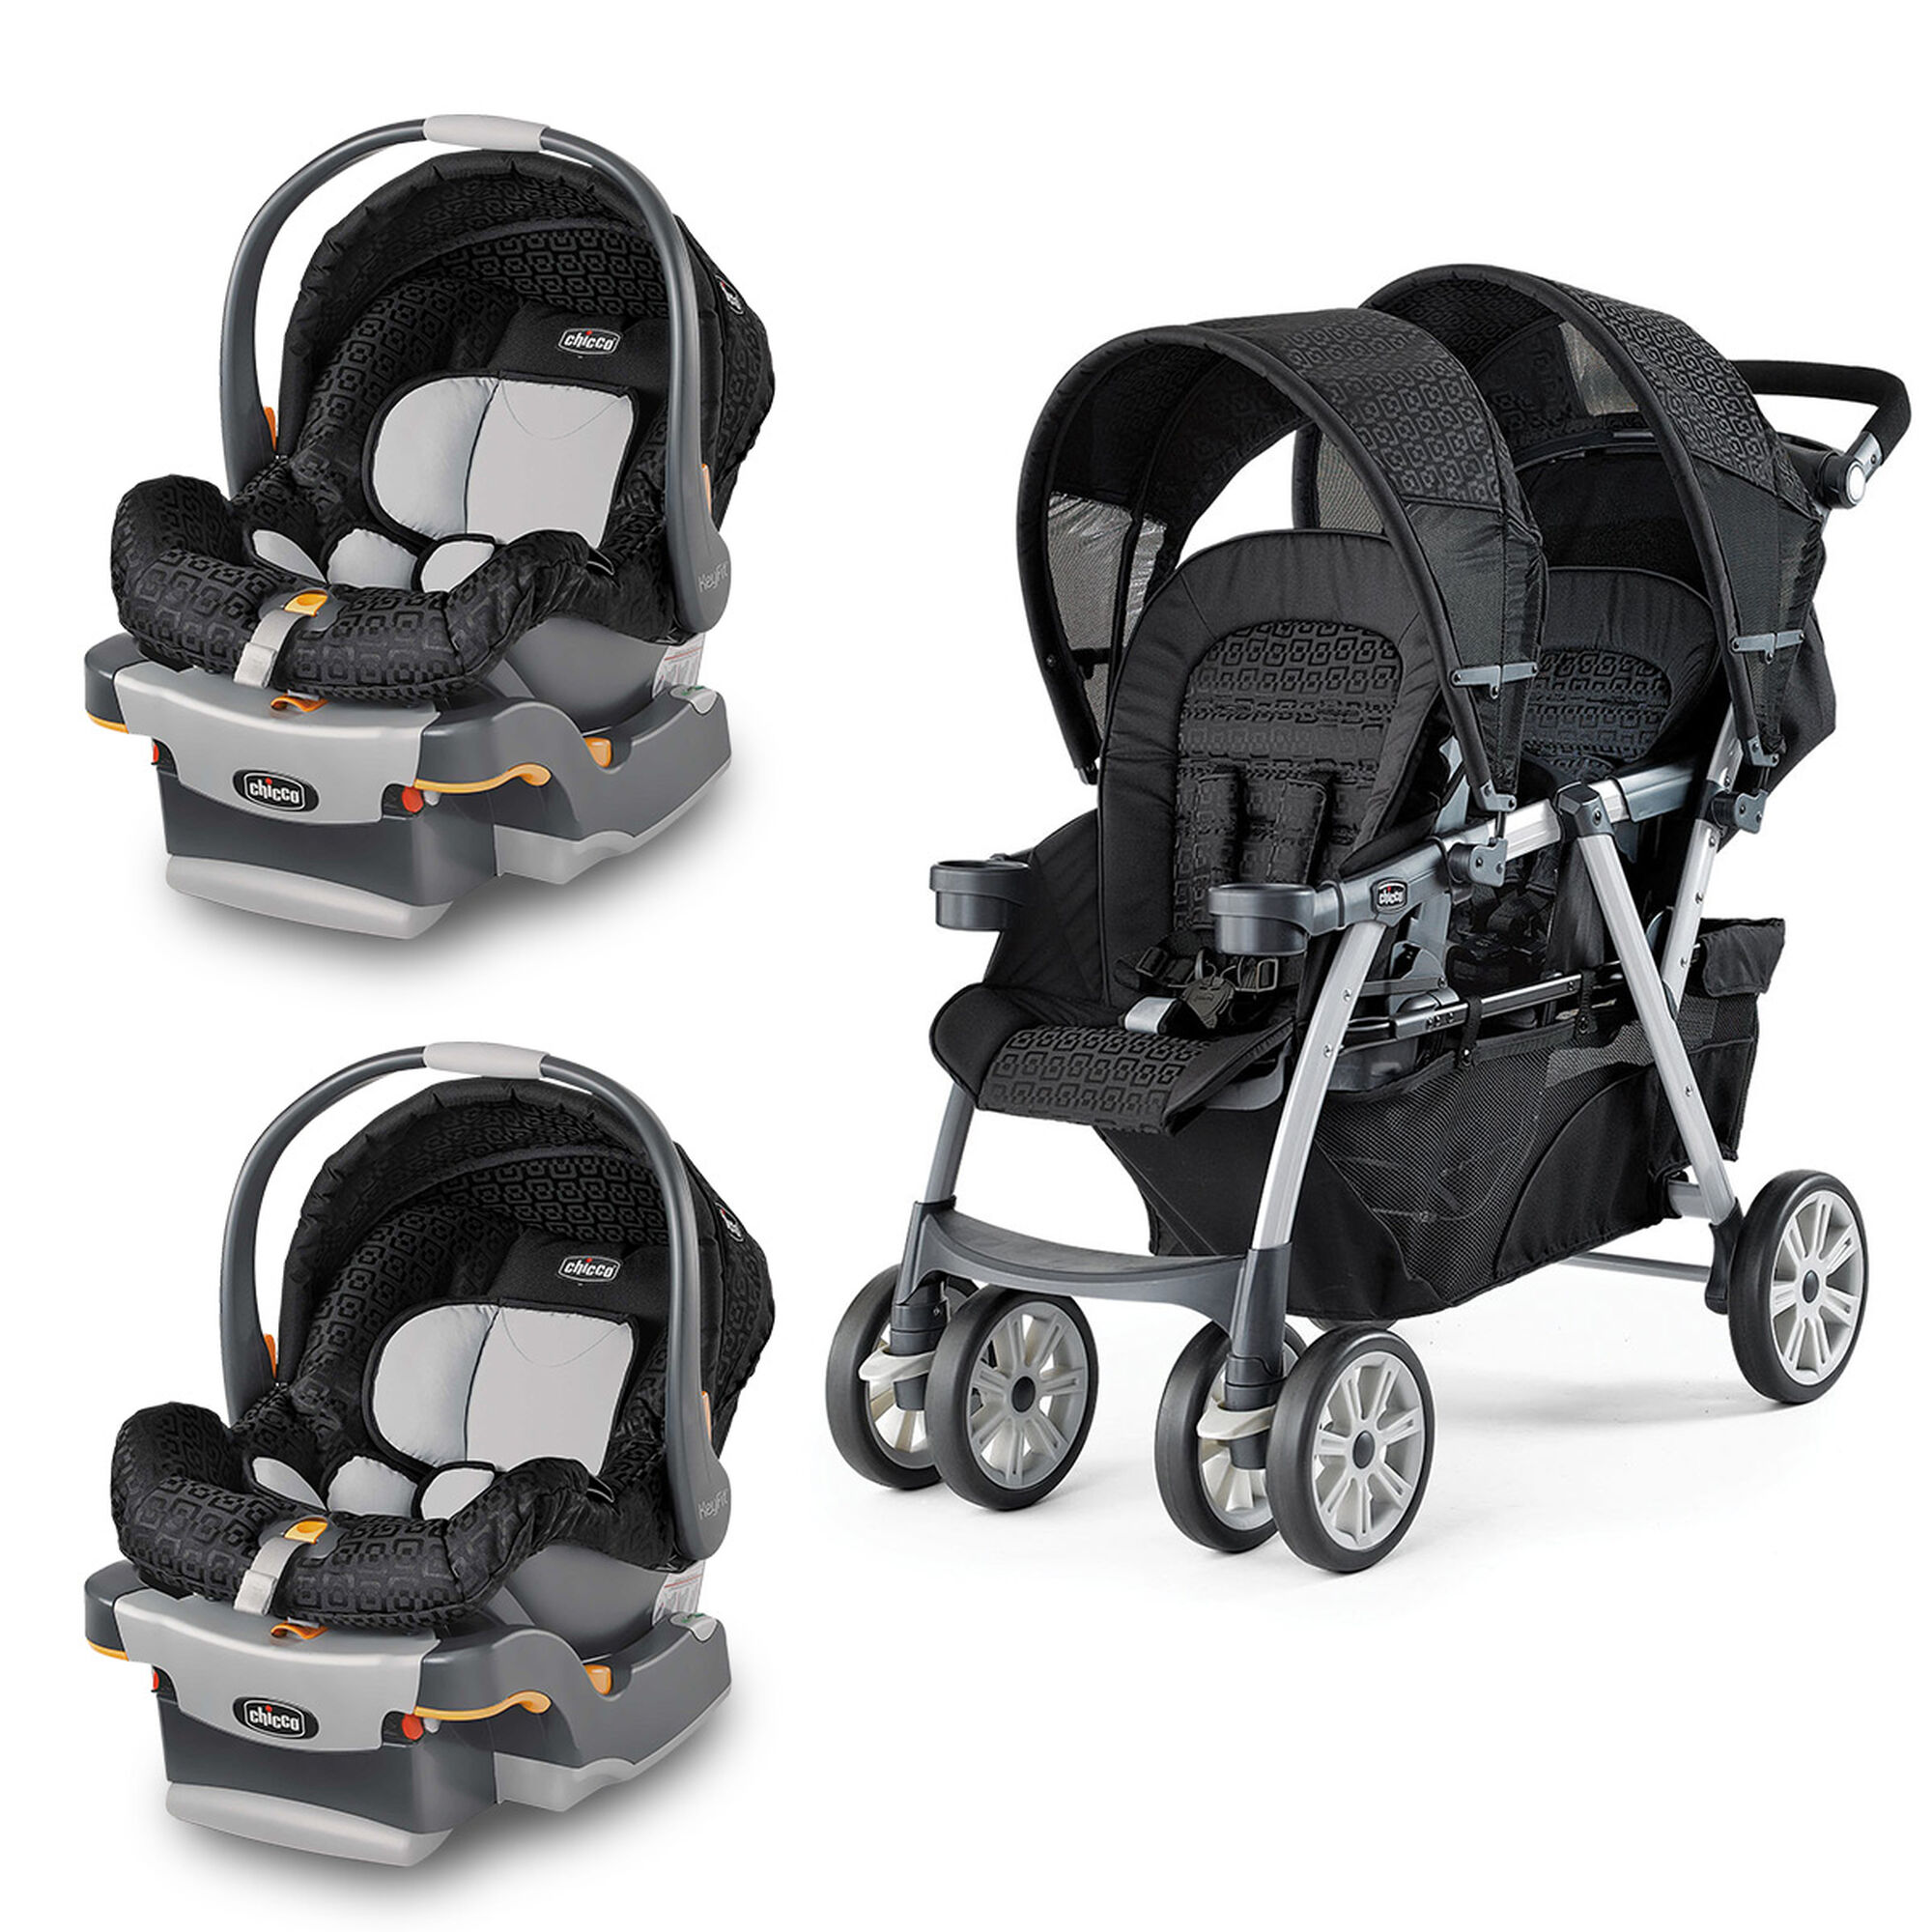 Chicco Cortina Together Double Stroller With Two KeyFit 30 Infant Car Seats In Black Fabric